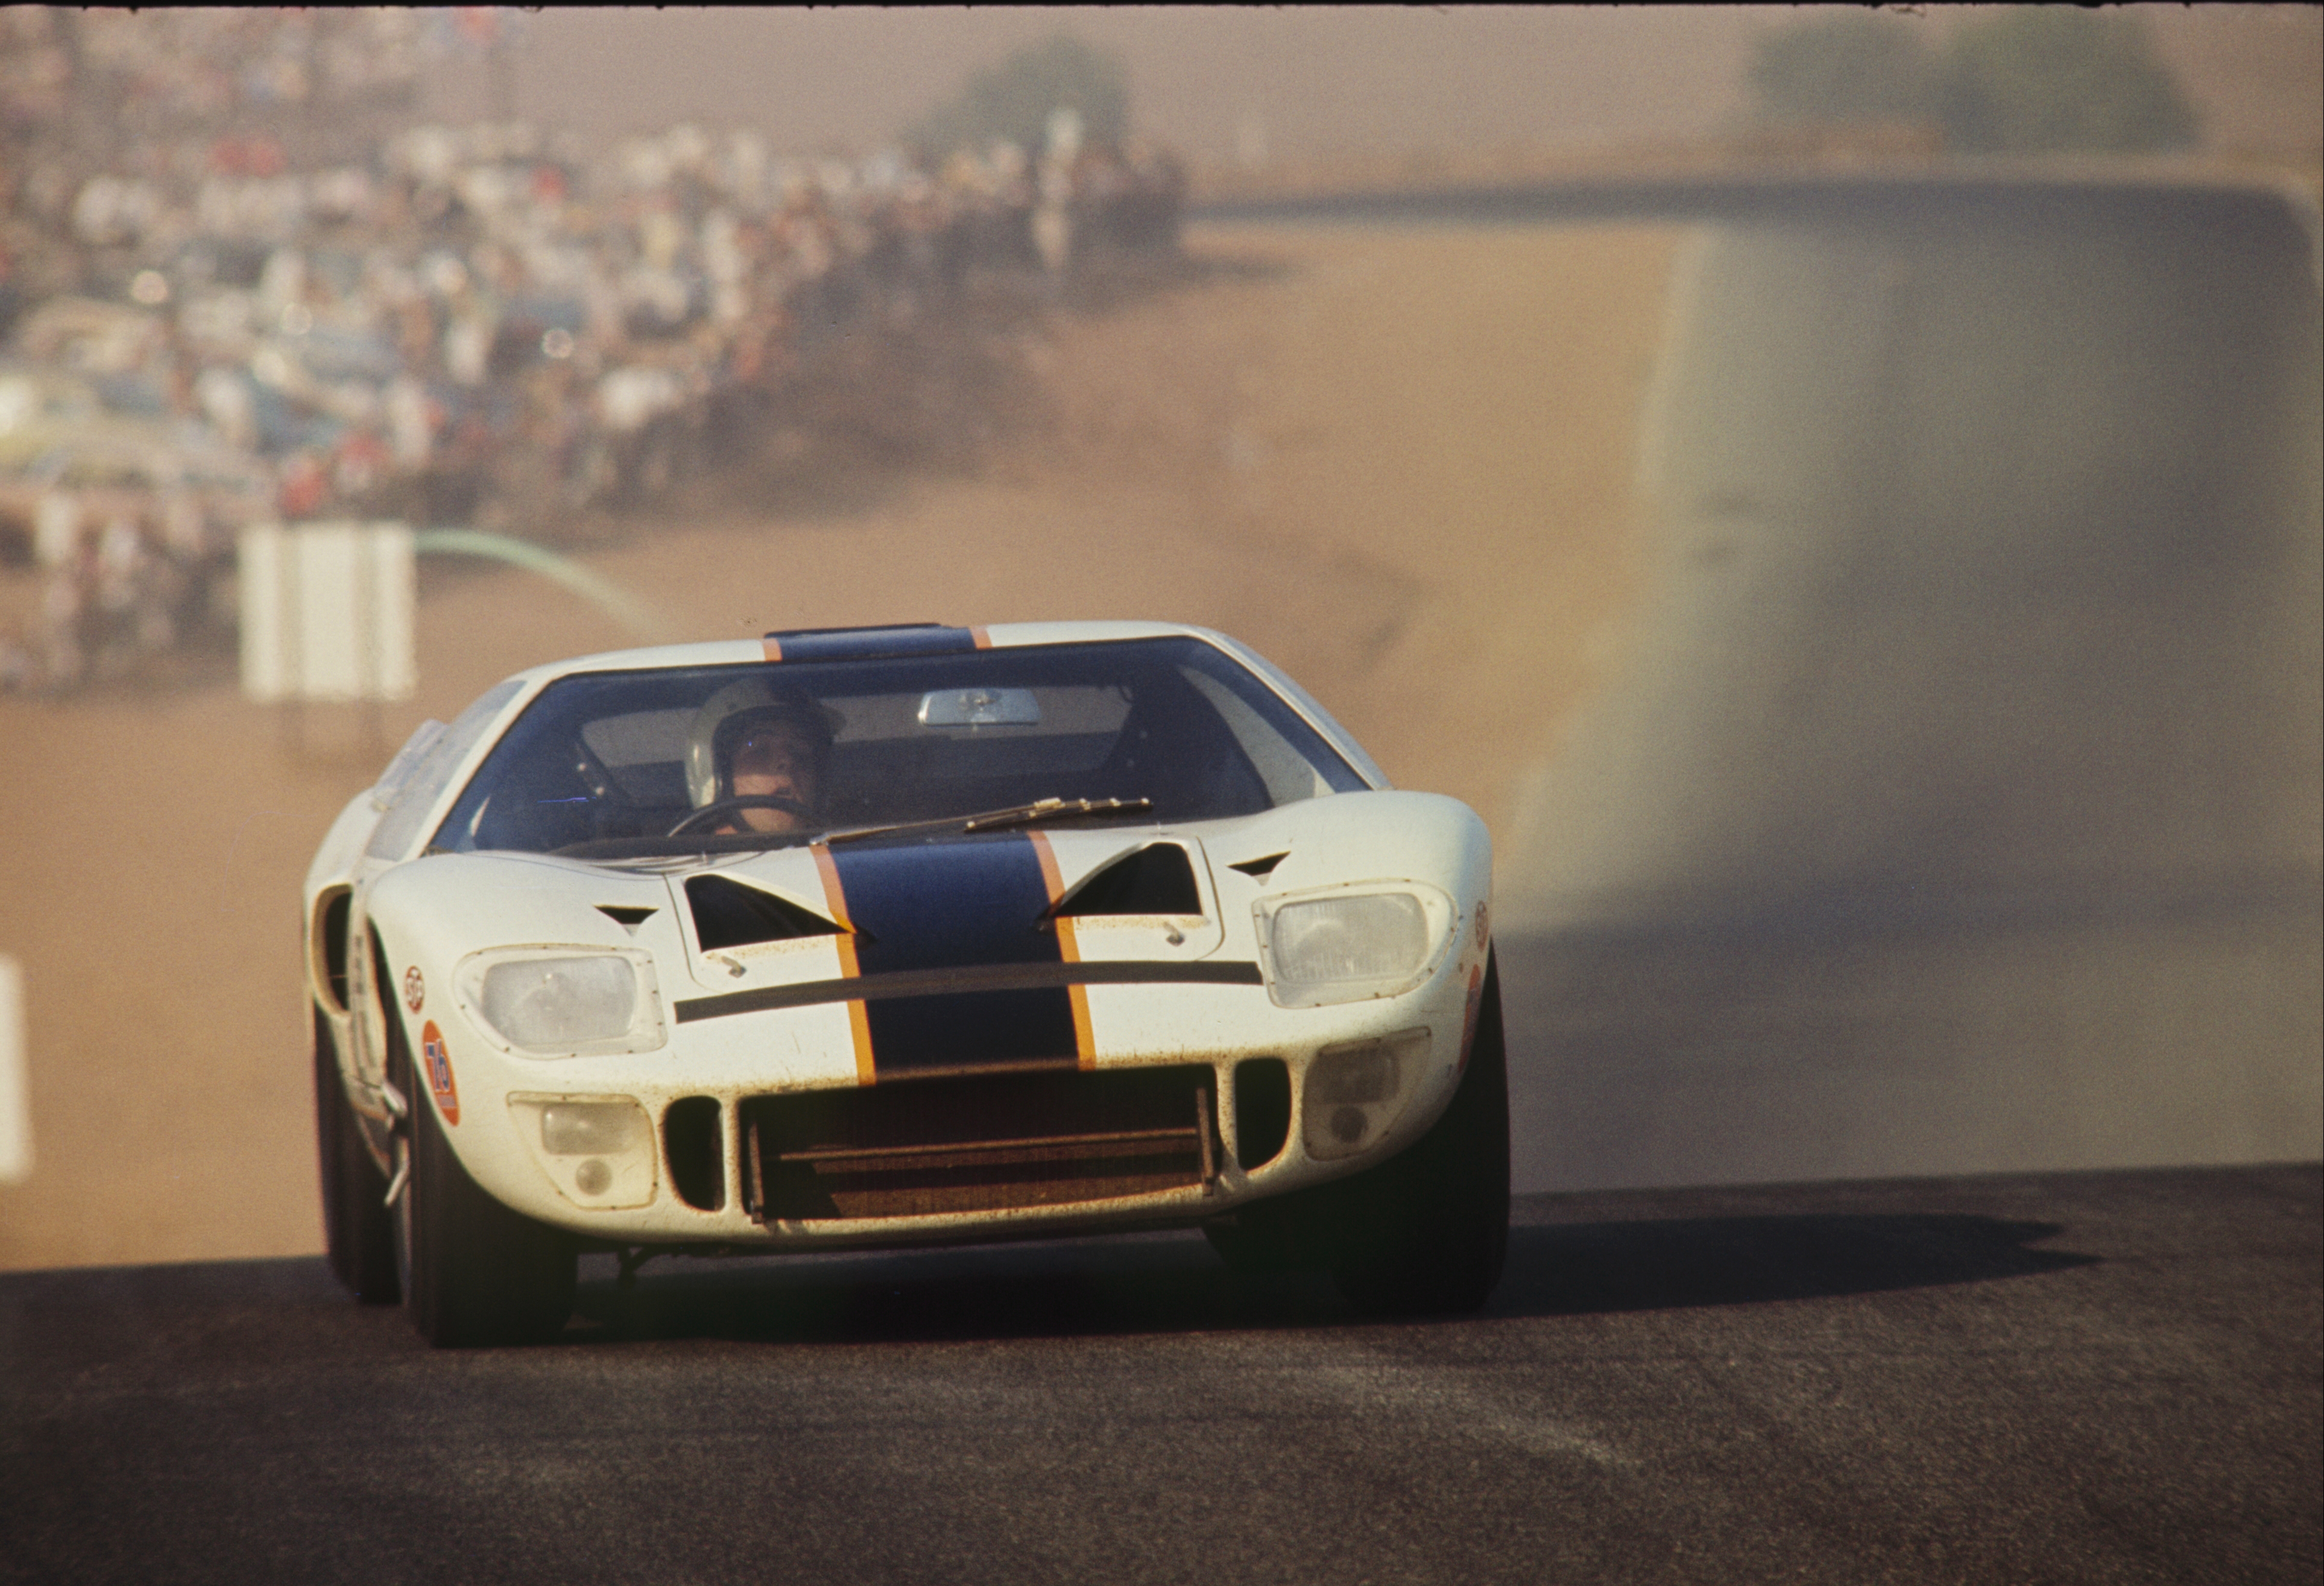 A Mark I GT40 from late-1965 driven by Skip Scott for Essex Wire. A car similar to this snagged the GT40's first major victory at the 24 Hours of Daytona in 1965 with Ken Miles and Lloyd Ruby driving.